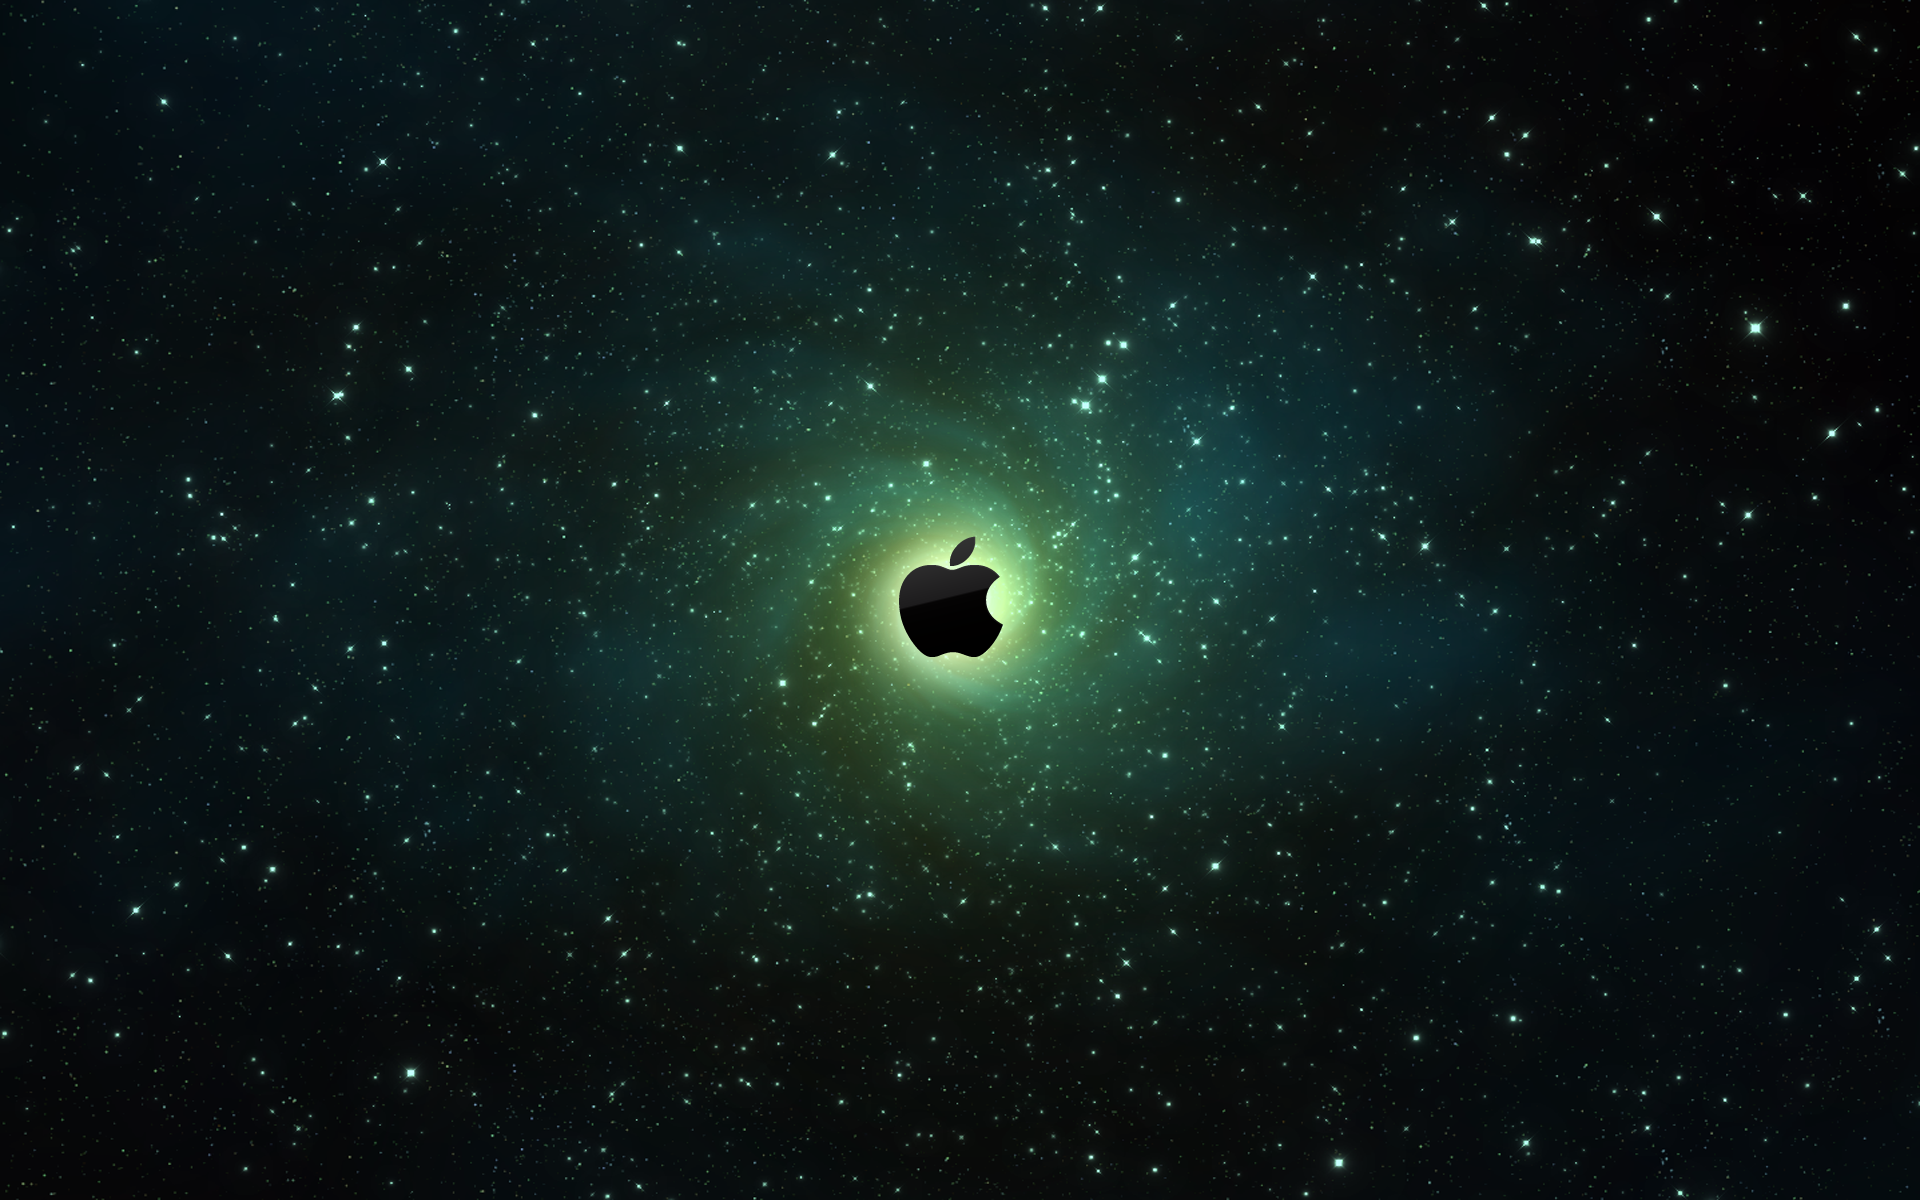 Apple Wallpapers For Mac Wallpaper